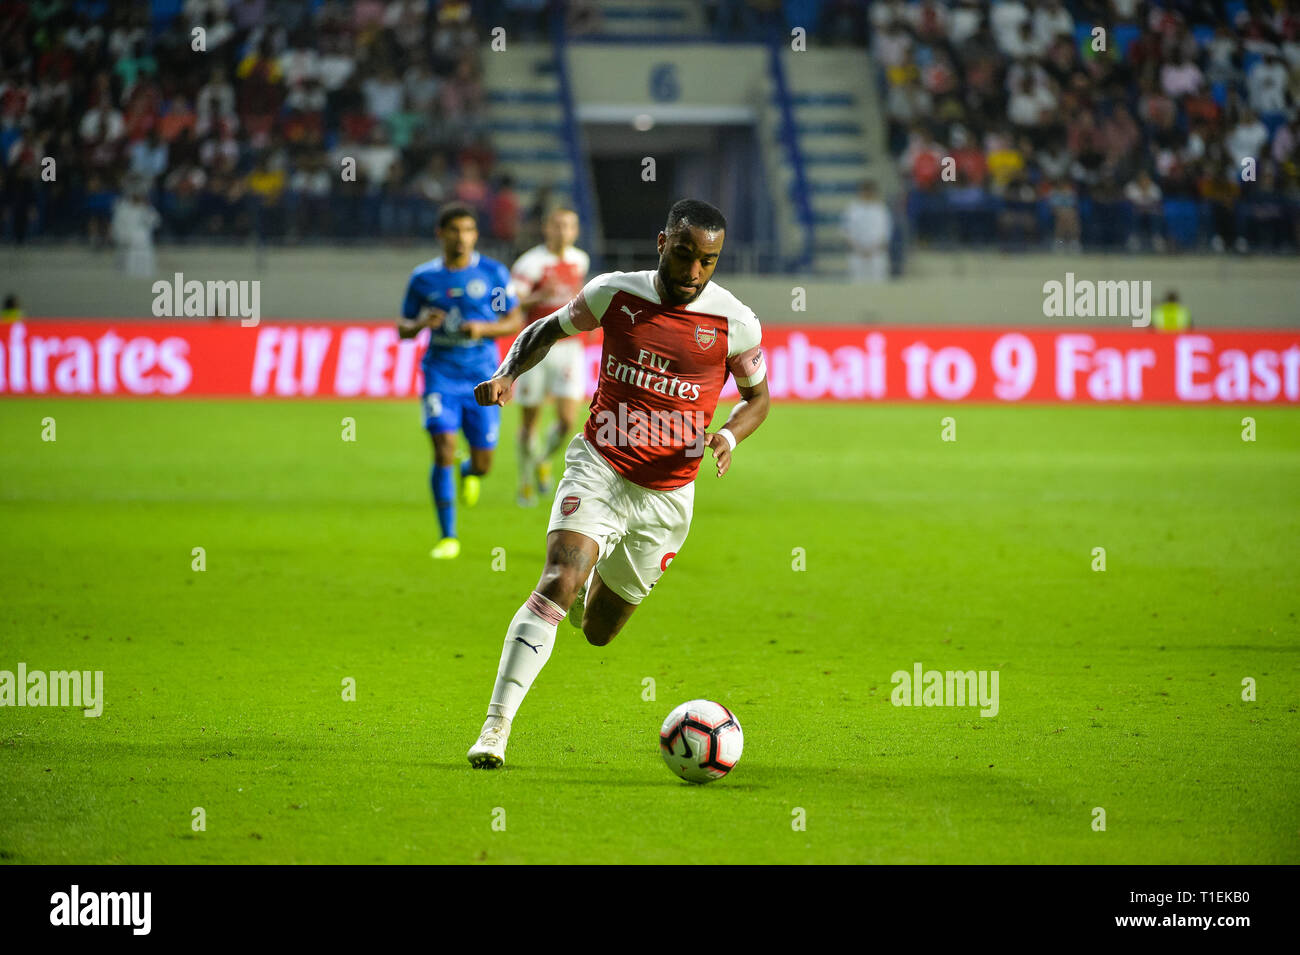 Dubai, UAE, 26th March 2019. Action from the friendly match between Arsenal F.C. and Al Nasr F.C. on the occasion of the official opening of Al Maktoum Stadium. This is the 2nd match of all time between the two teams after 1976 Credit: Feroz Khan/Alamy Live News - Stock Image